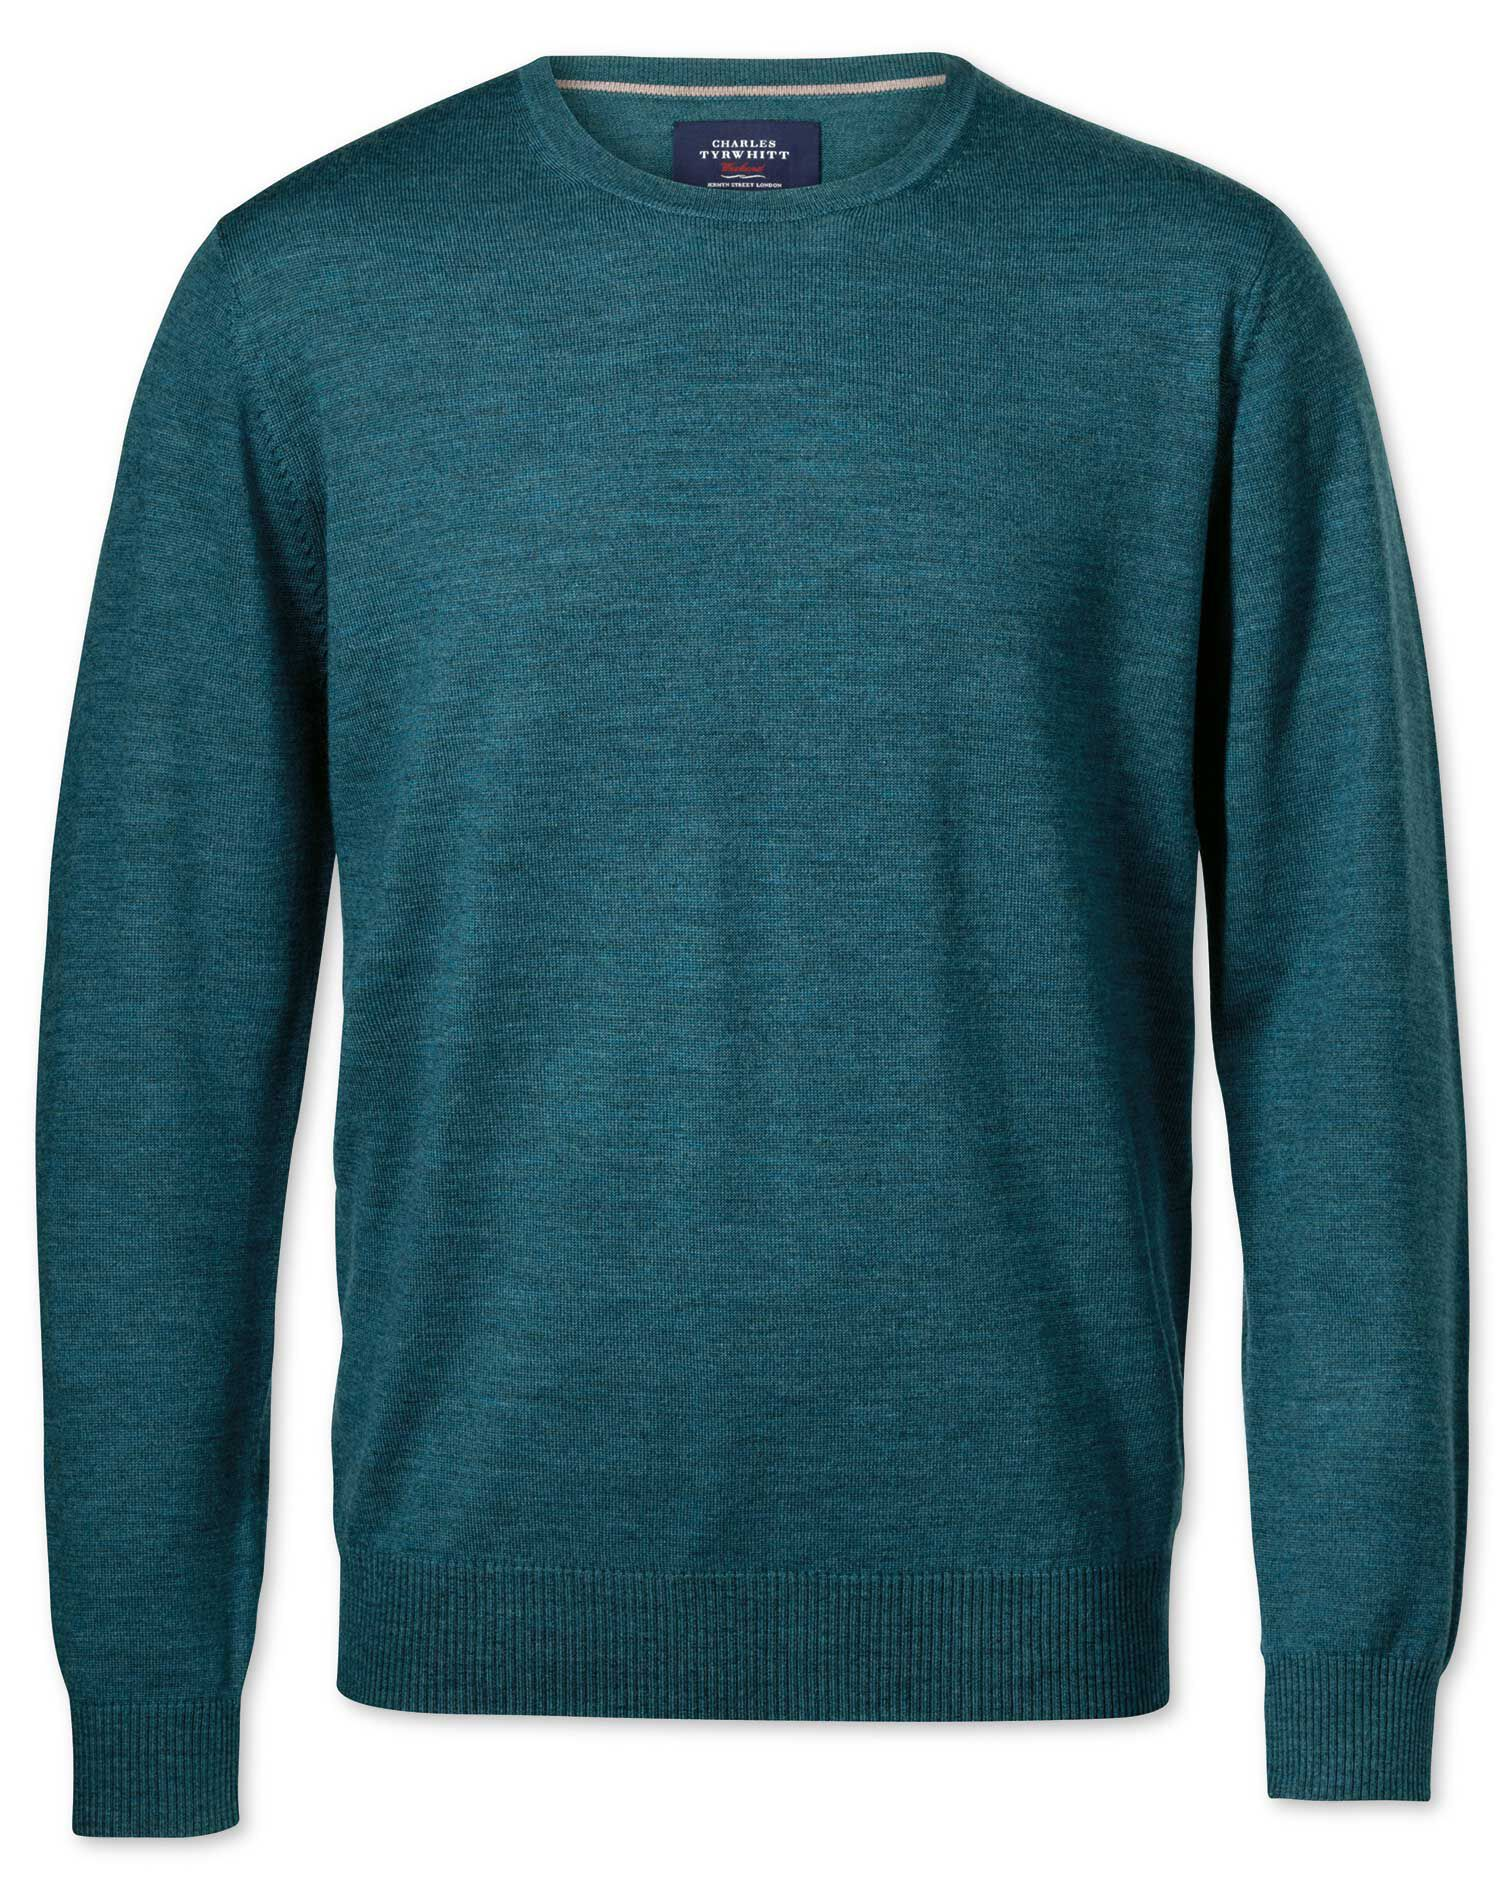 Teal Merino Crew Neck Wool Jumper Size XS by Charles Tyrwhitt